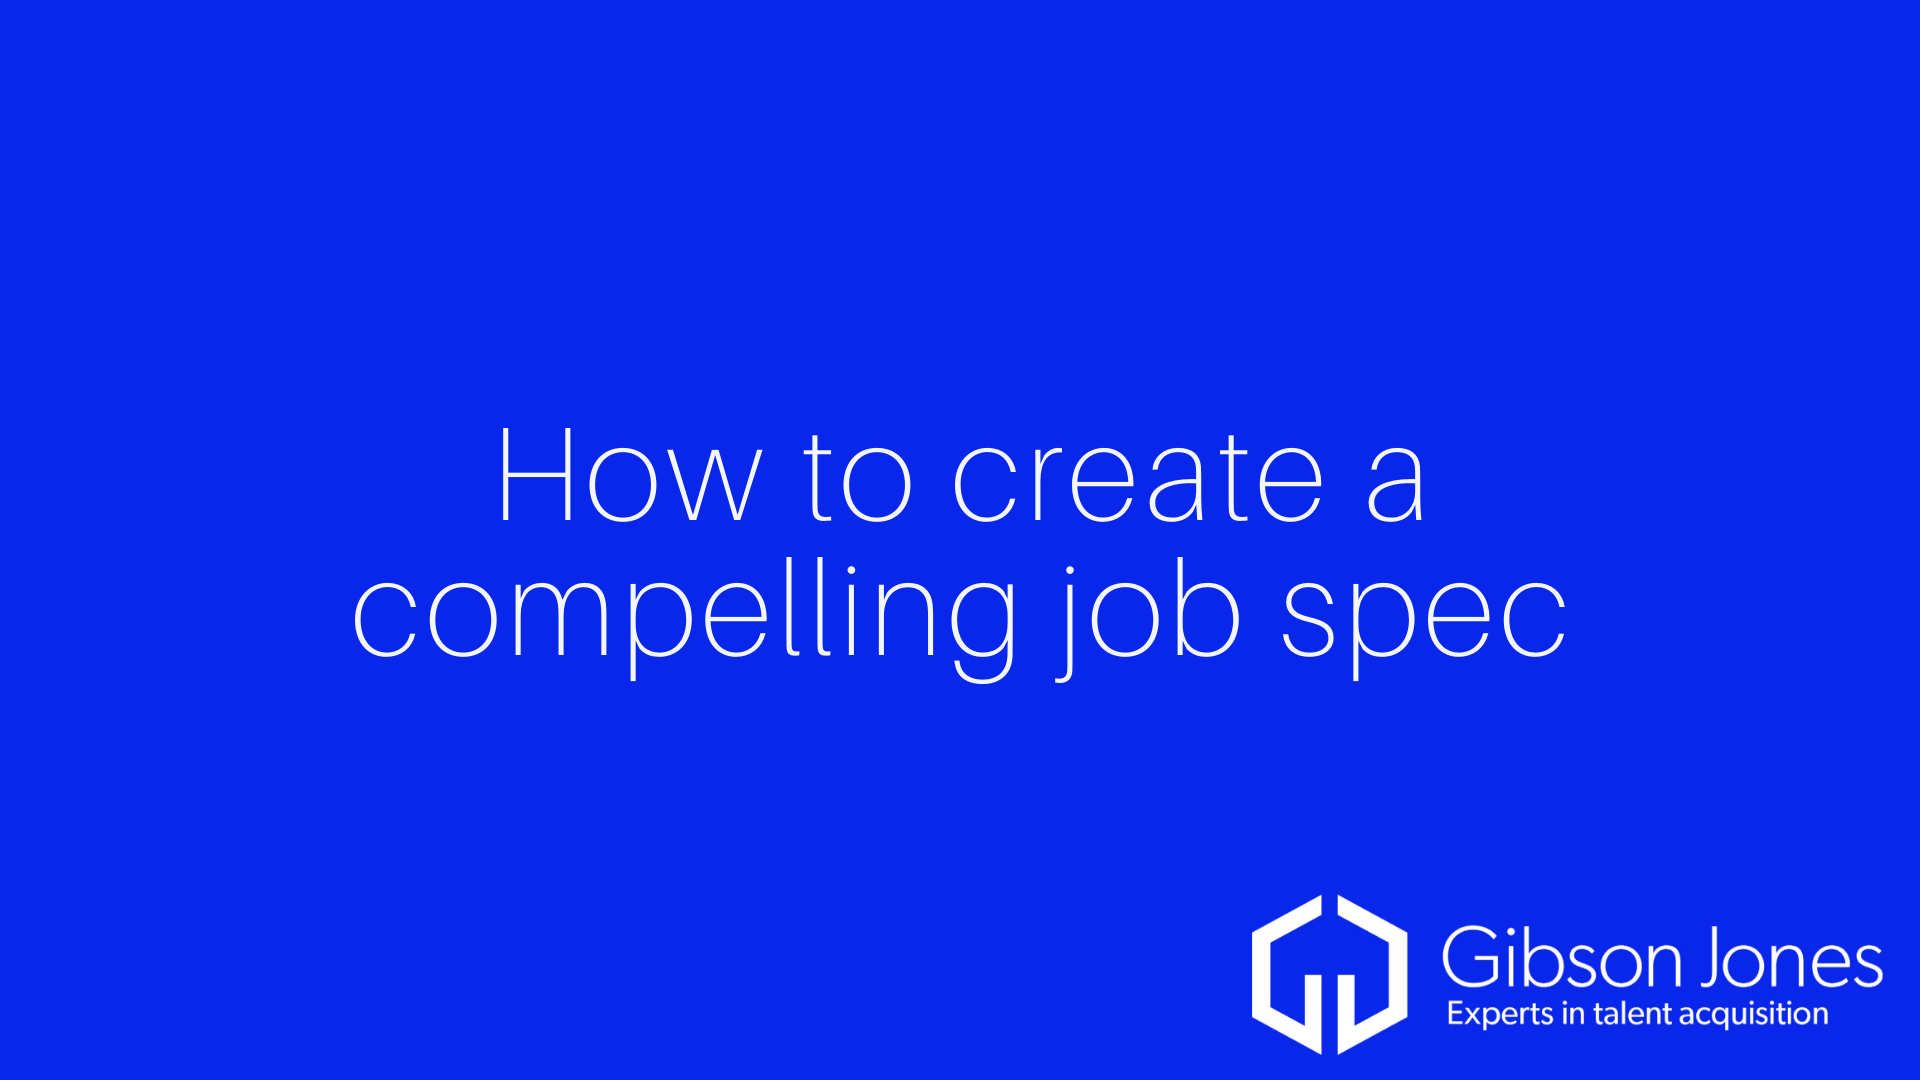 How to create a compelling job spec